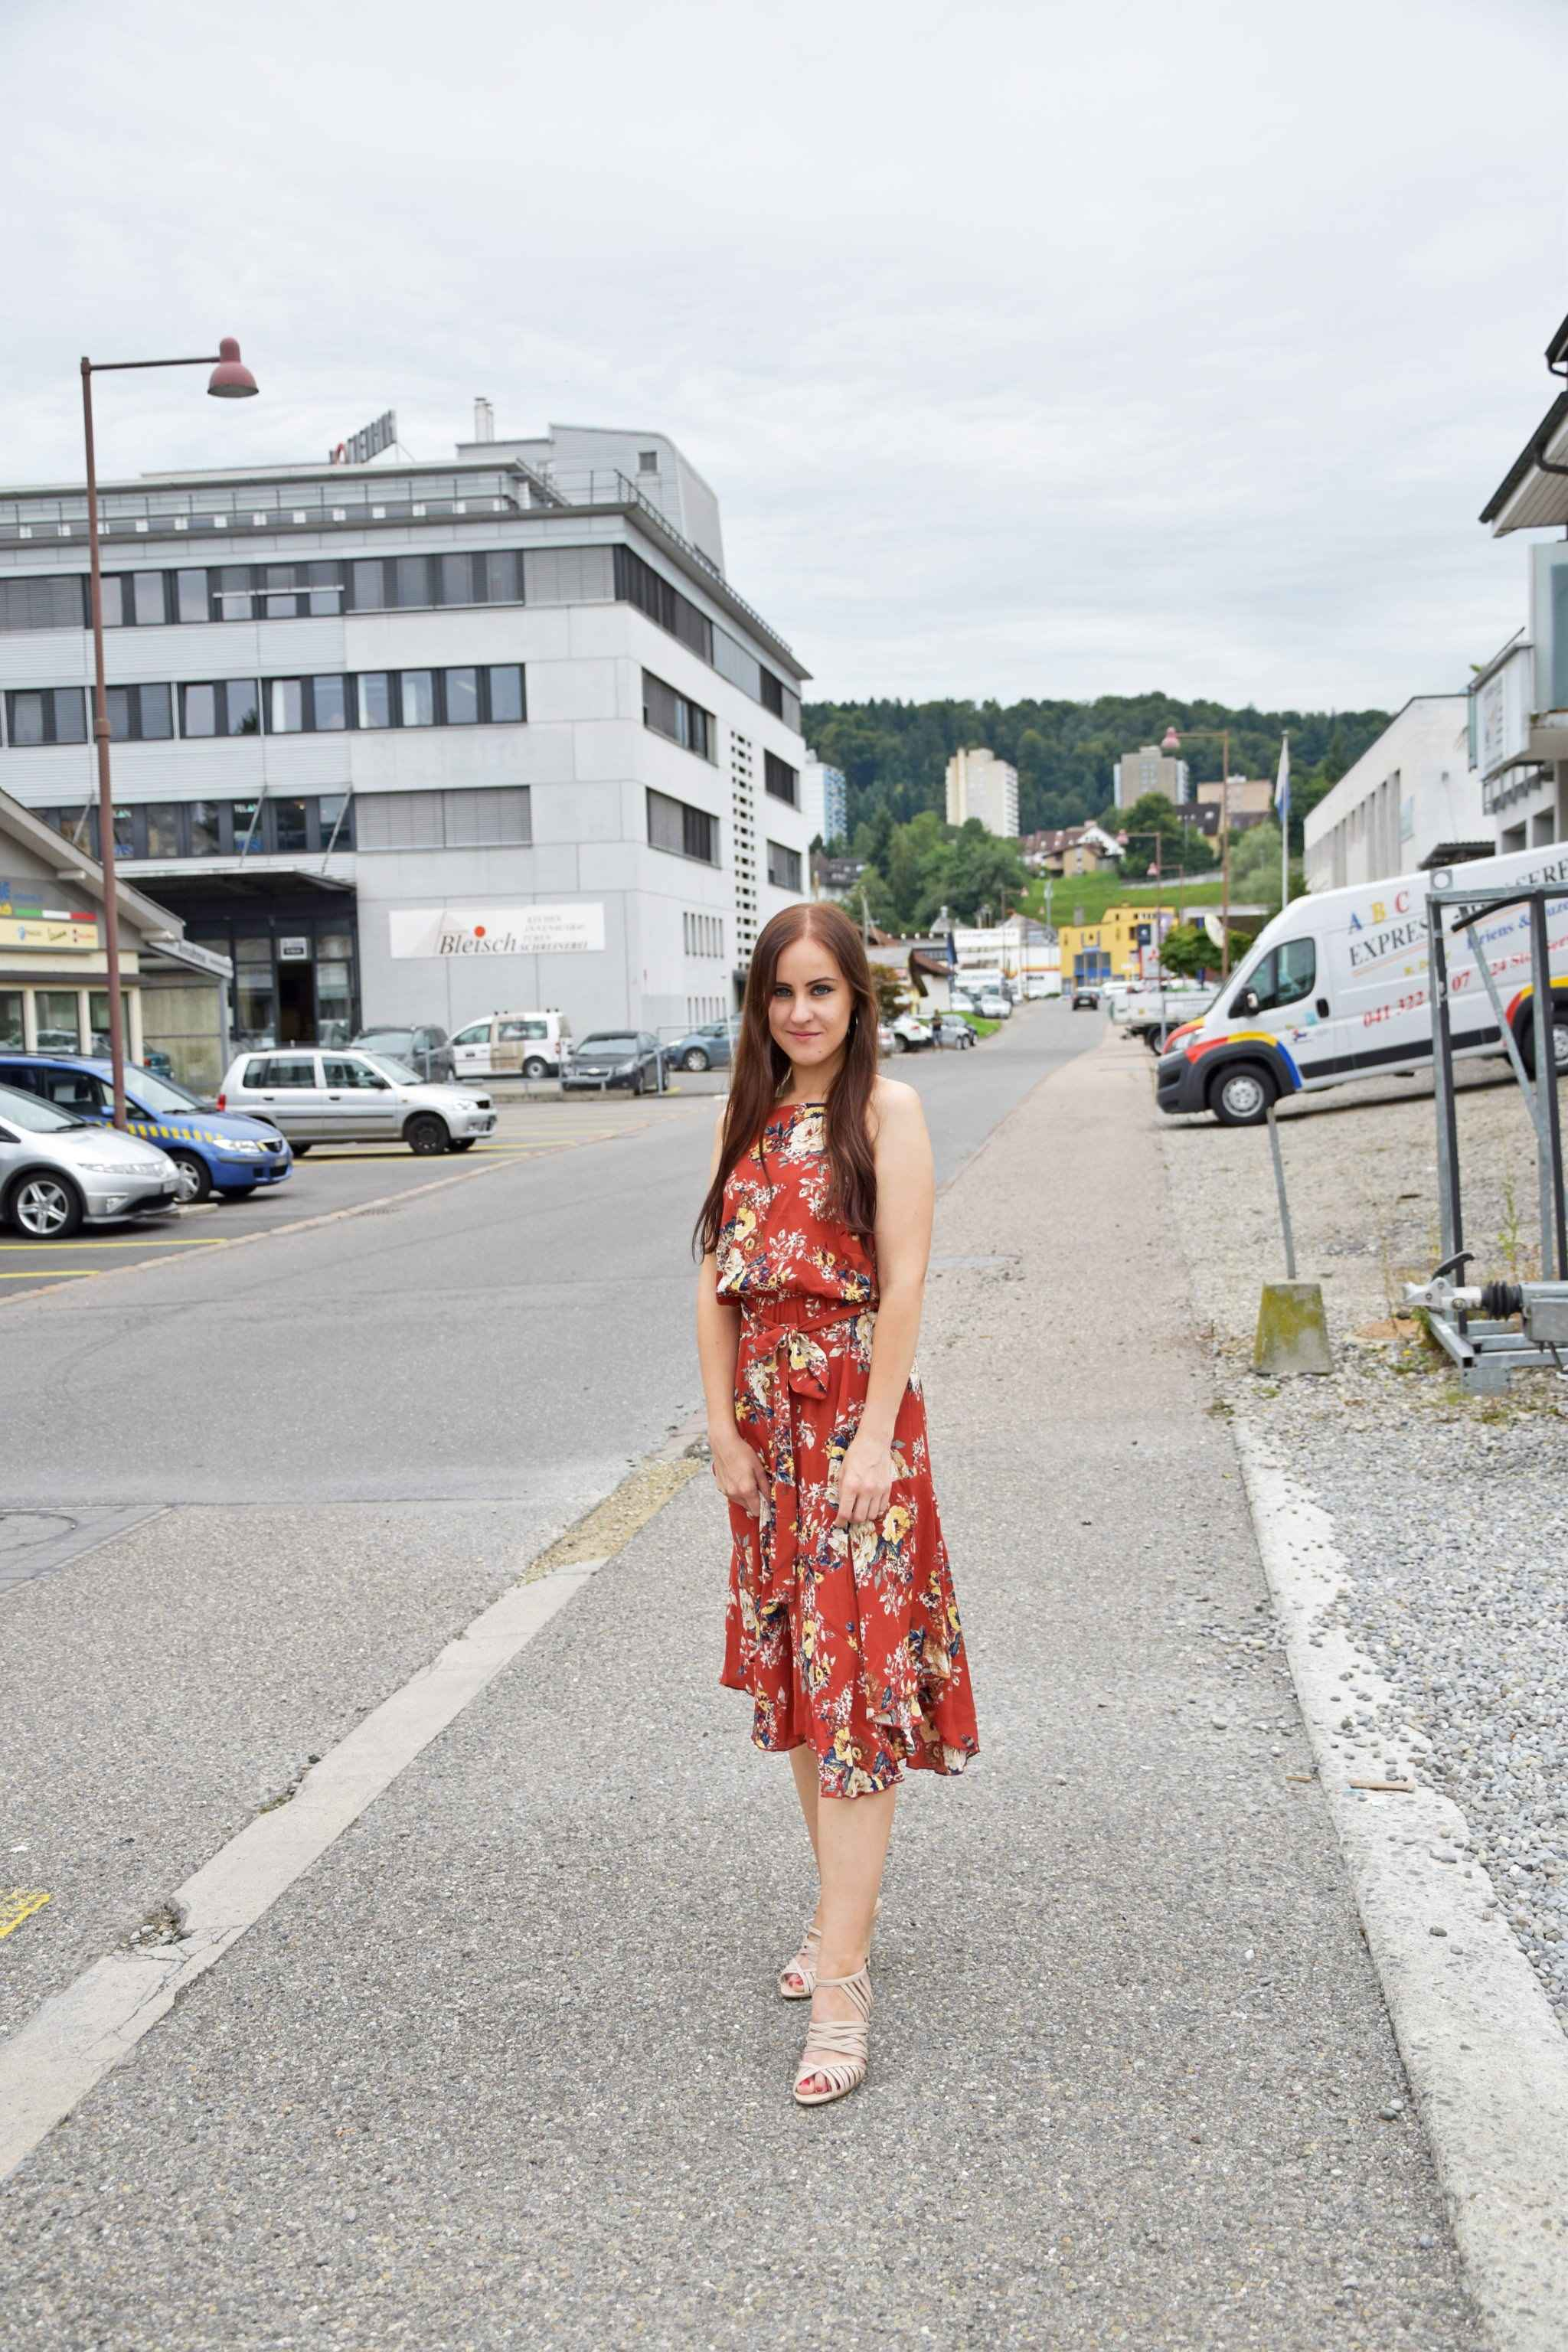 Flower Summer Dress Outfit, Fashion, Fashionblogger, Floral Print, ootd